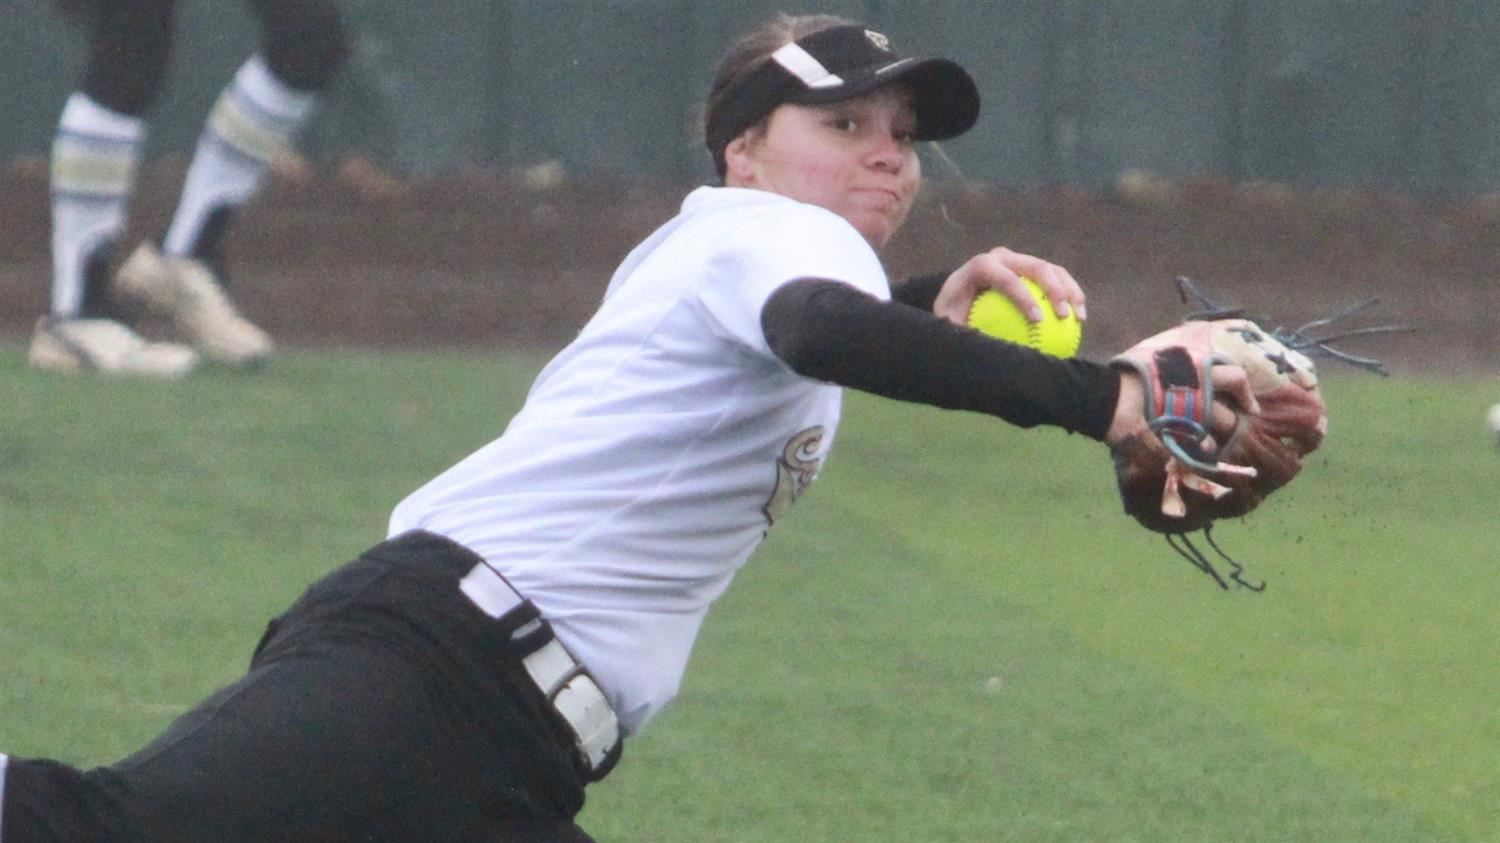 The Colony High School's Coleman Named Gatorade National Softball Player of the Year